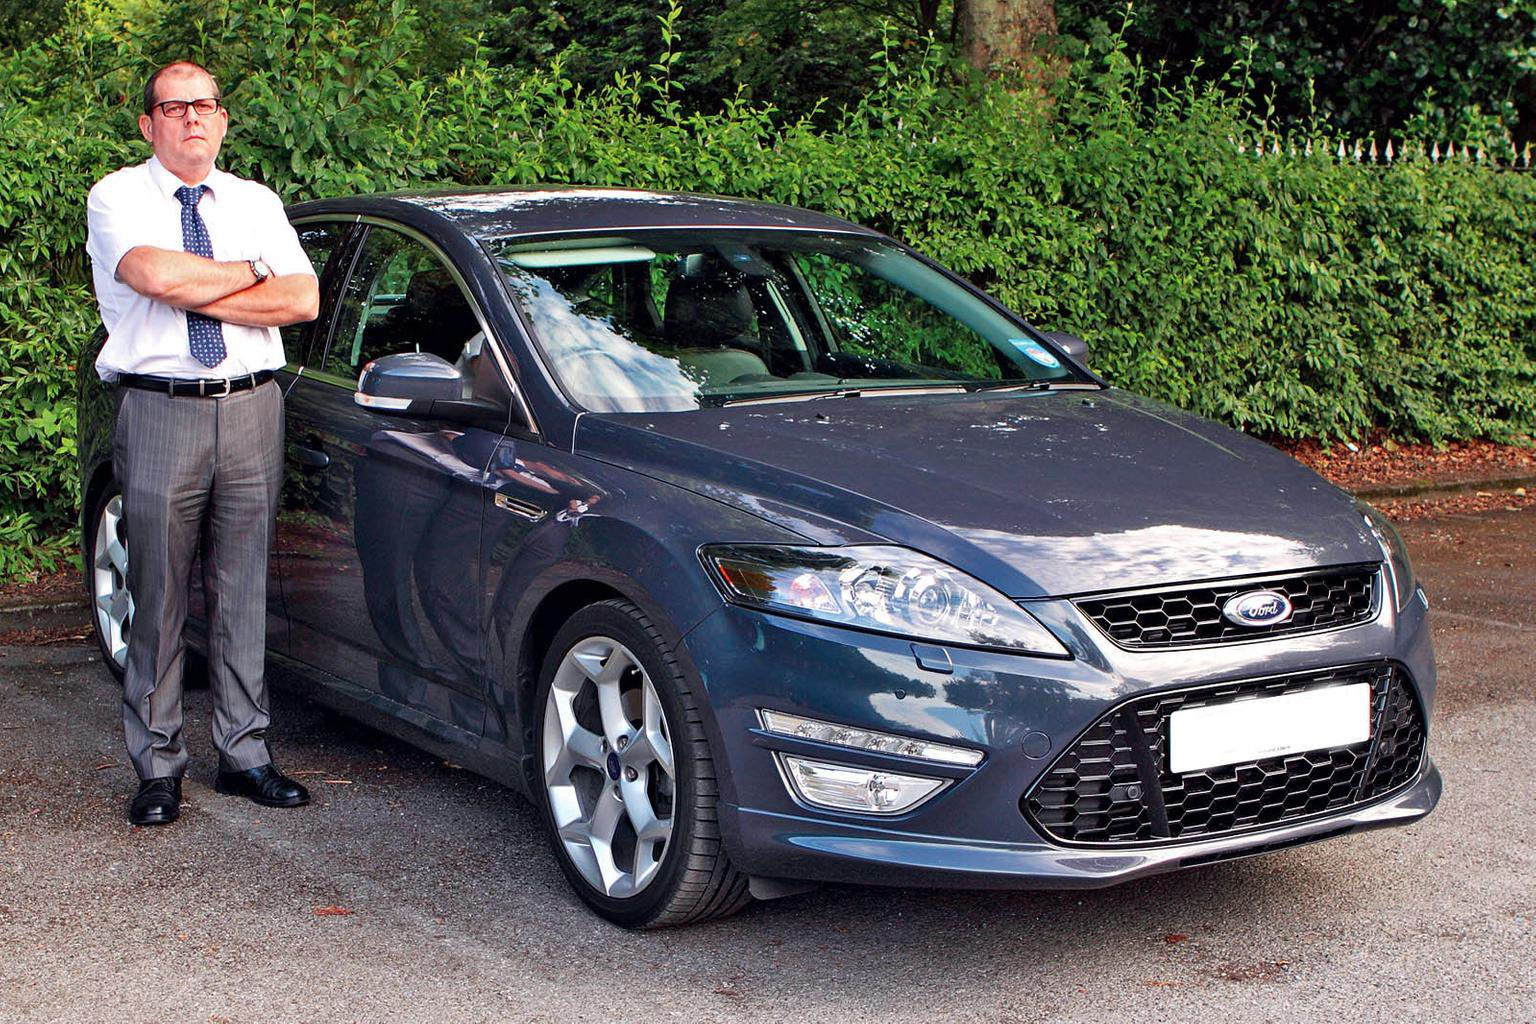 Ford Mondeo mechanical problem